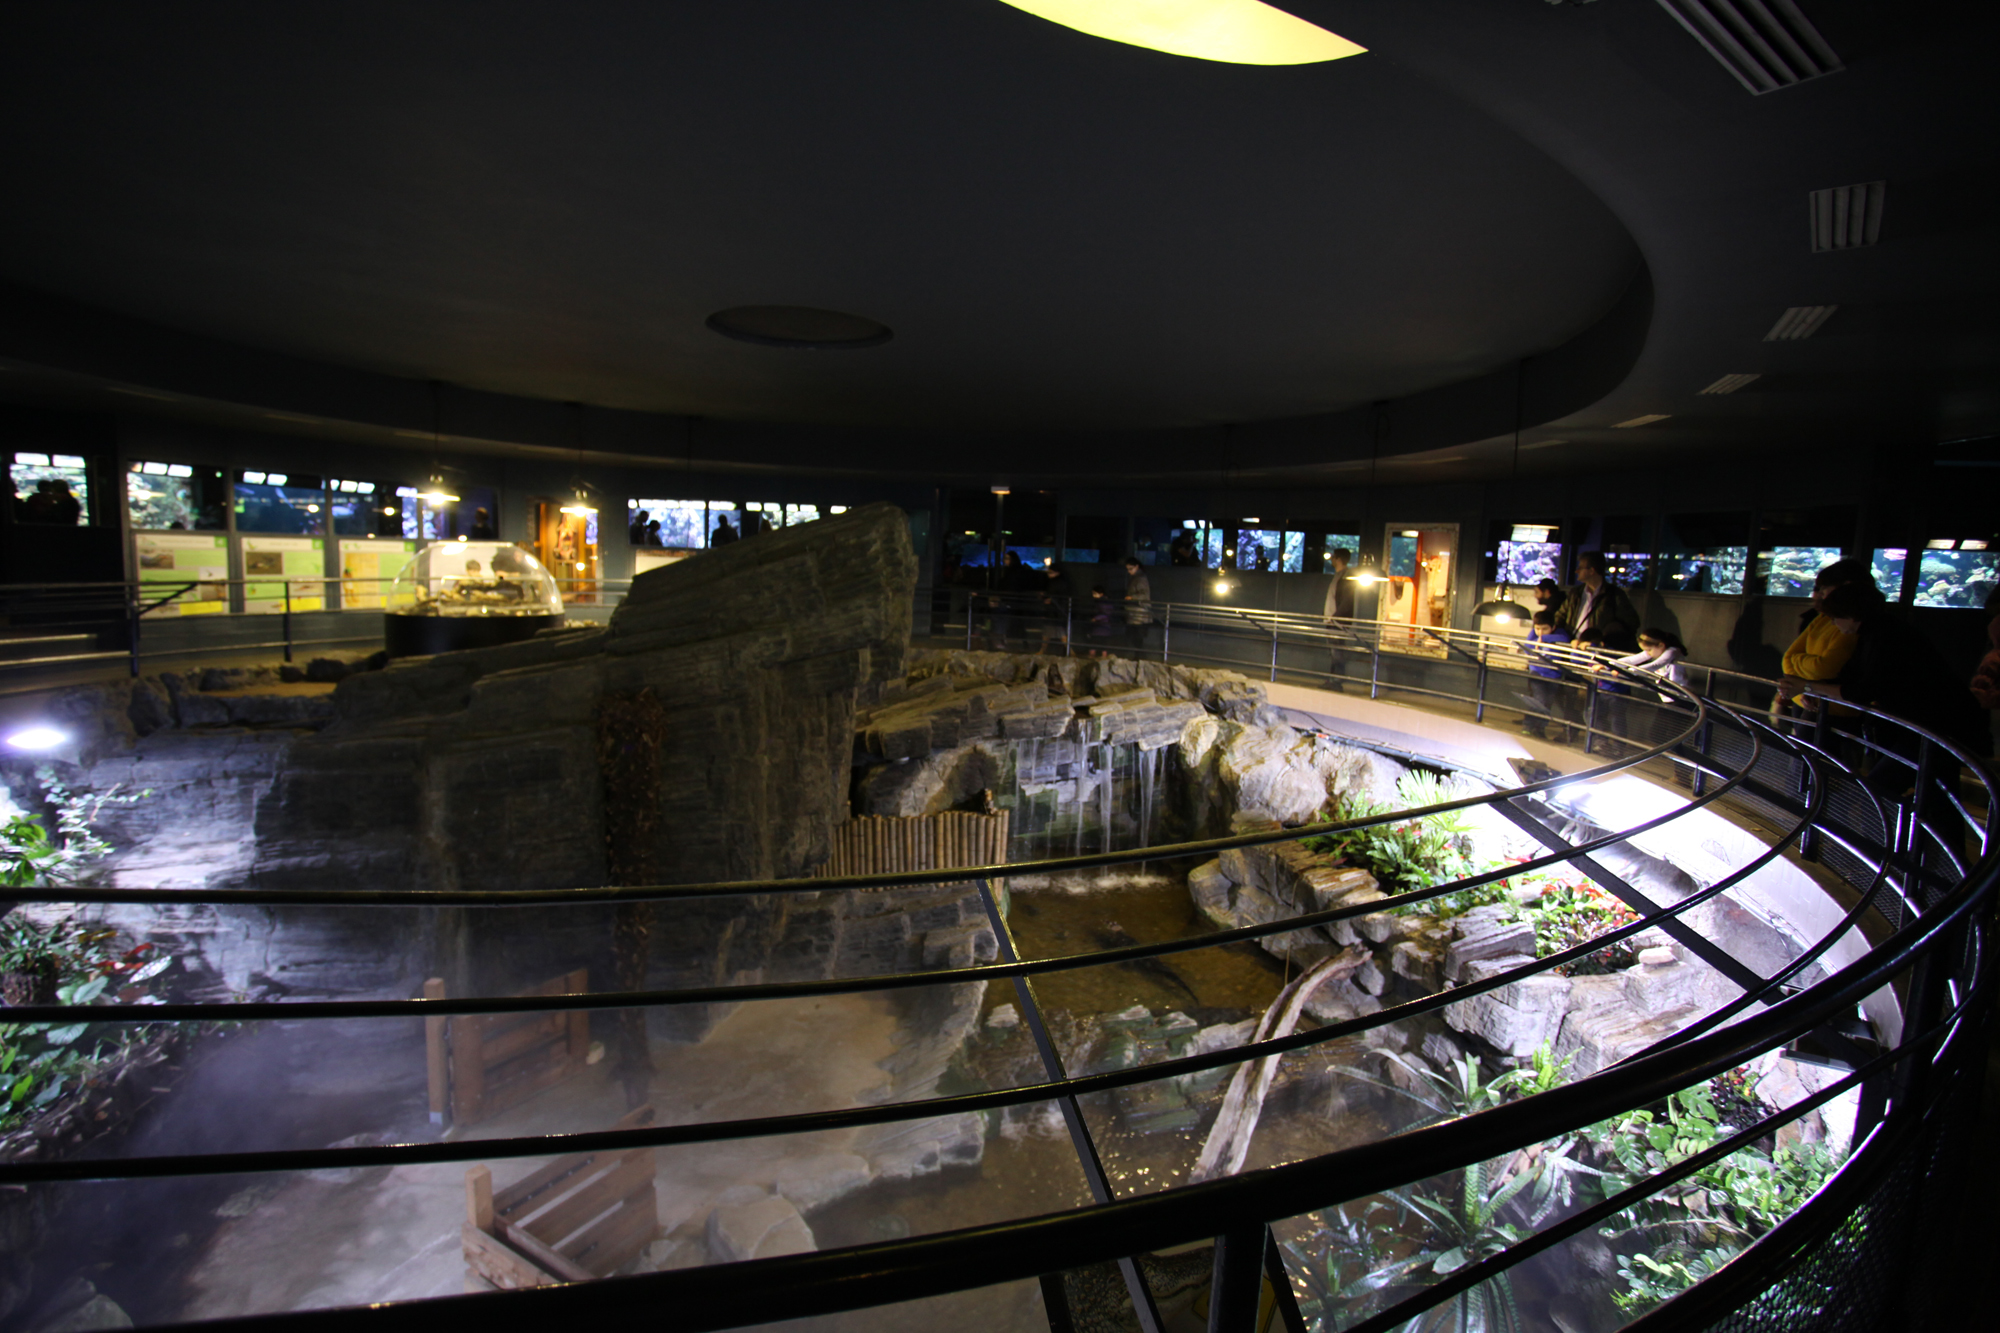 File:Aquarium tropical du Palais de la Porte Doree 2.jpg - Wikimedia ...